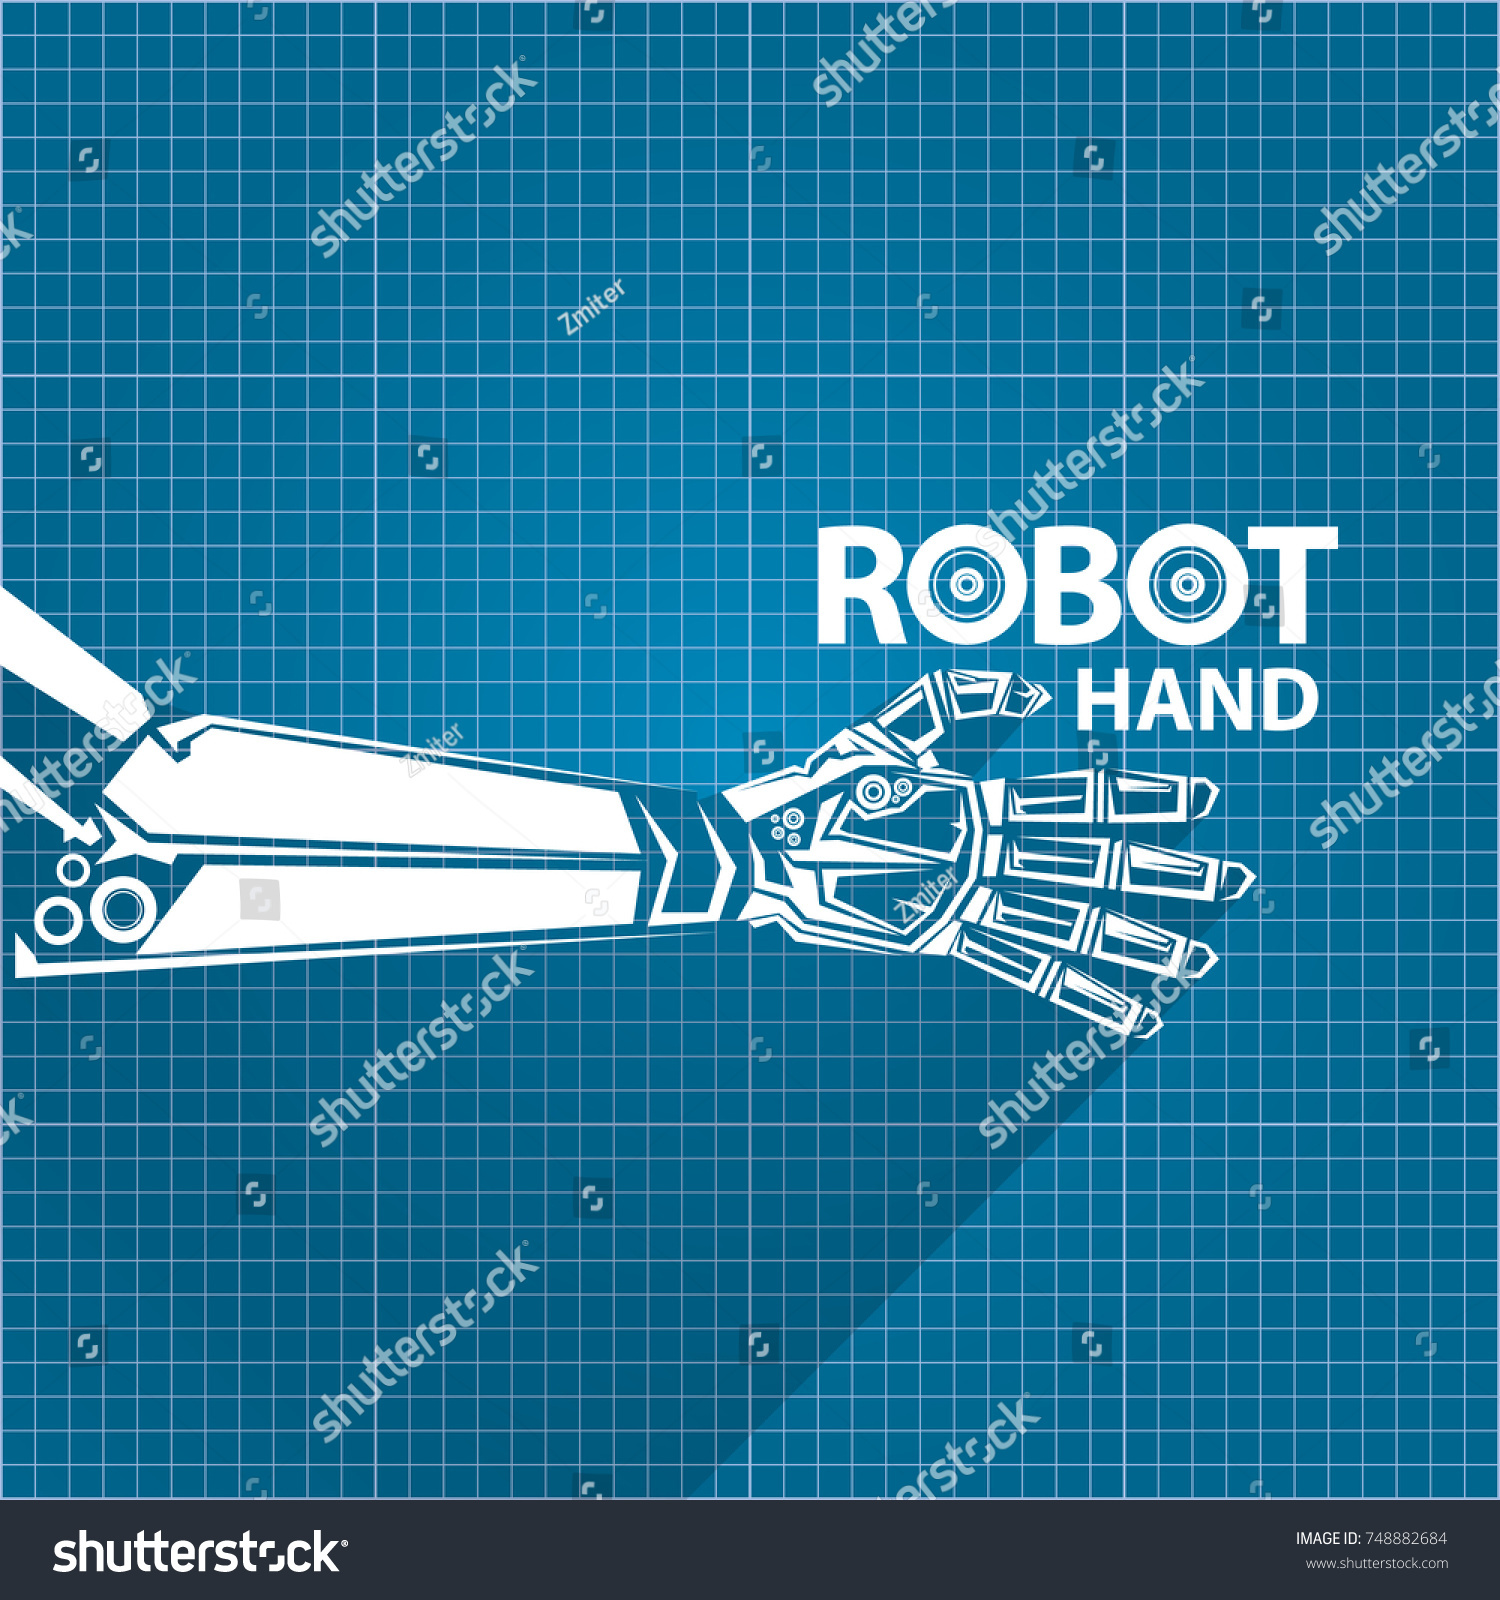 Vector robotic arm symbol on blueprint vectores en stock 748882684 vector robotic arm symbol on blueprint paper background robot hand technology background design template malvernweather Choice Image